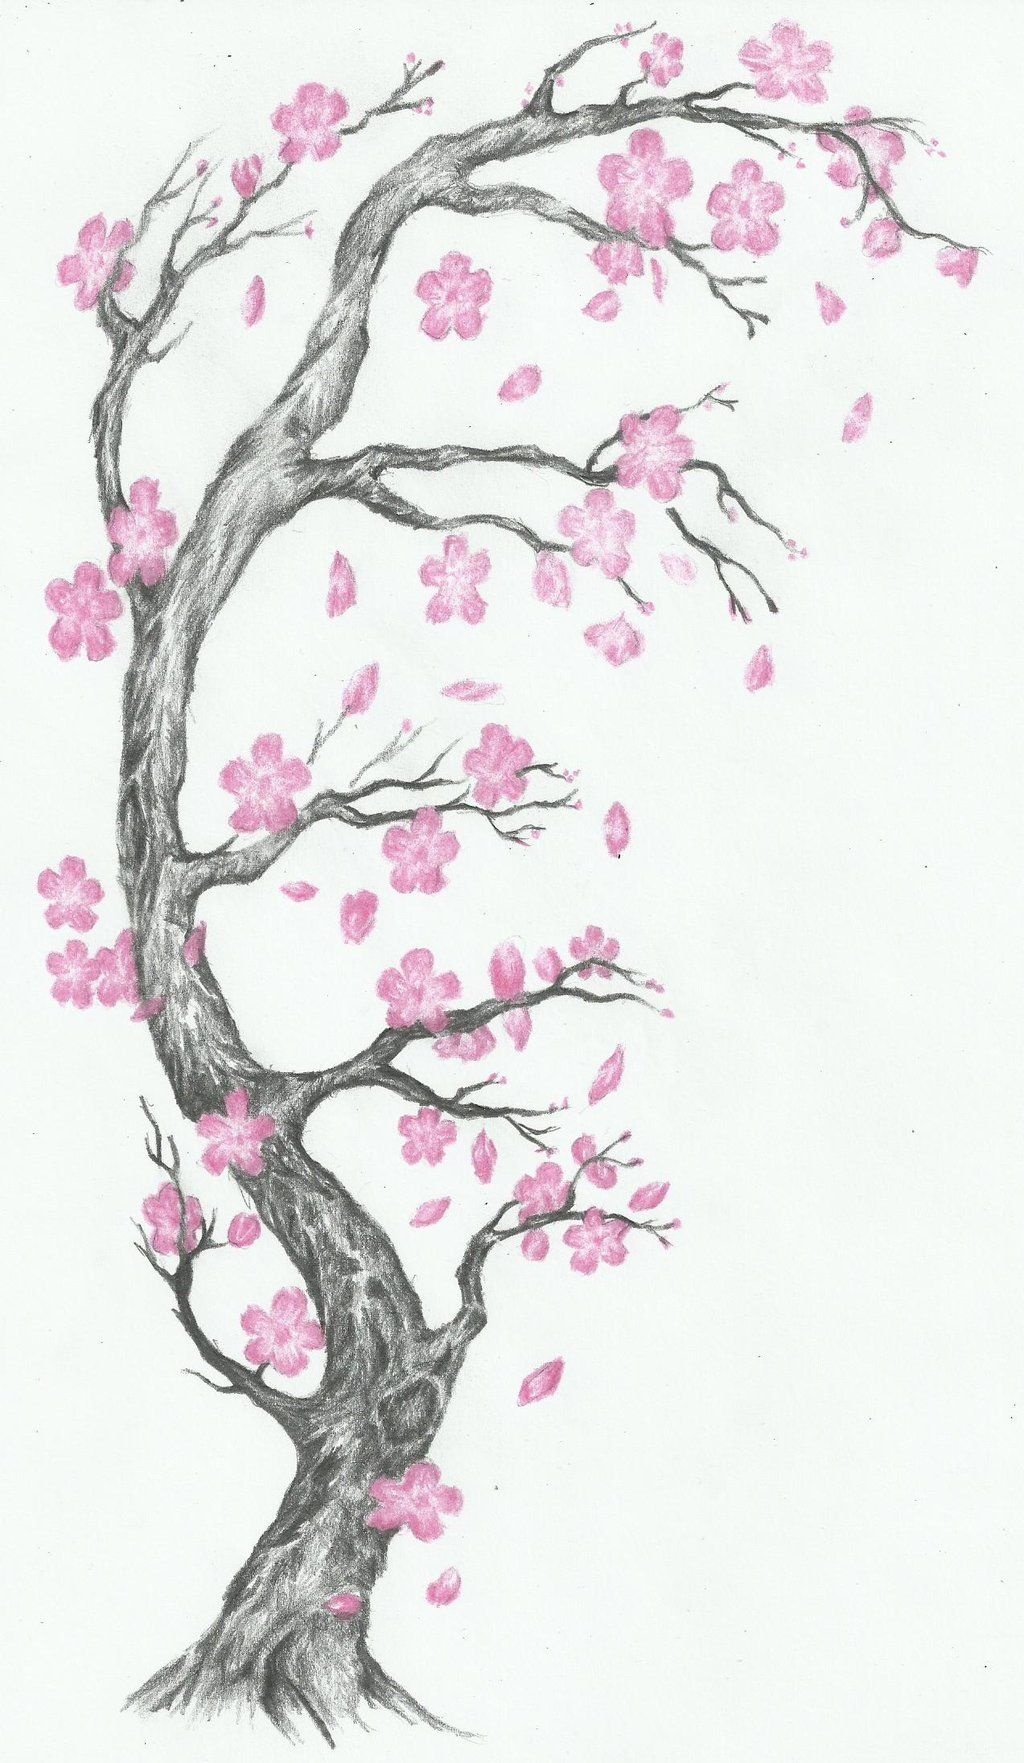 cherry blossom tattoo - Google Search | Tattoos - Cherry ...